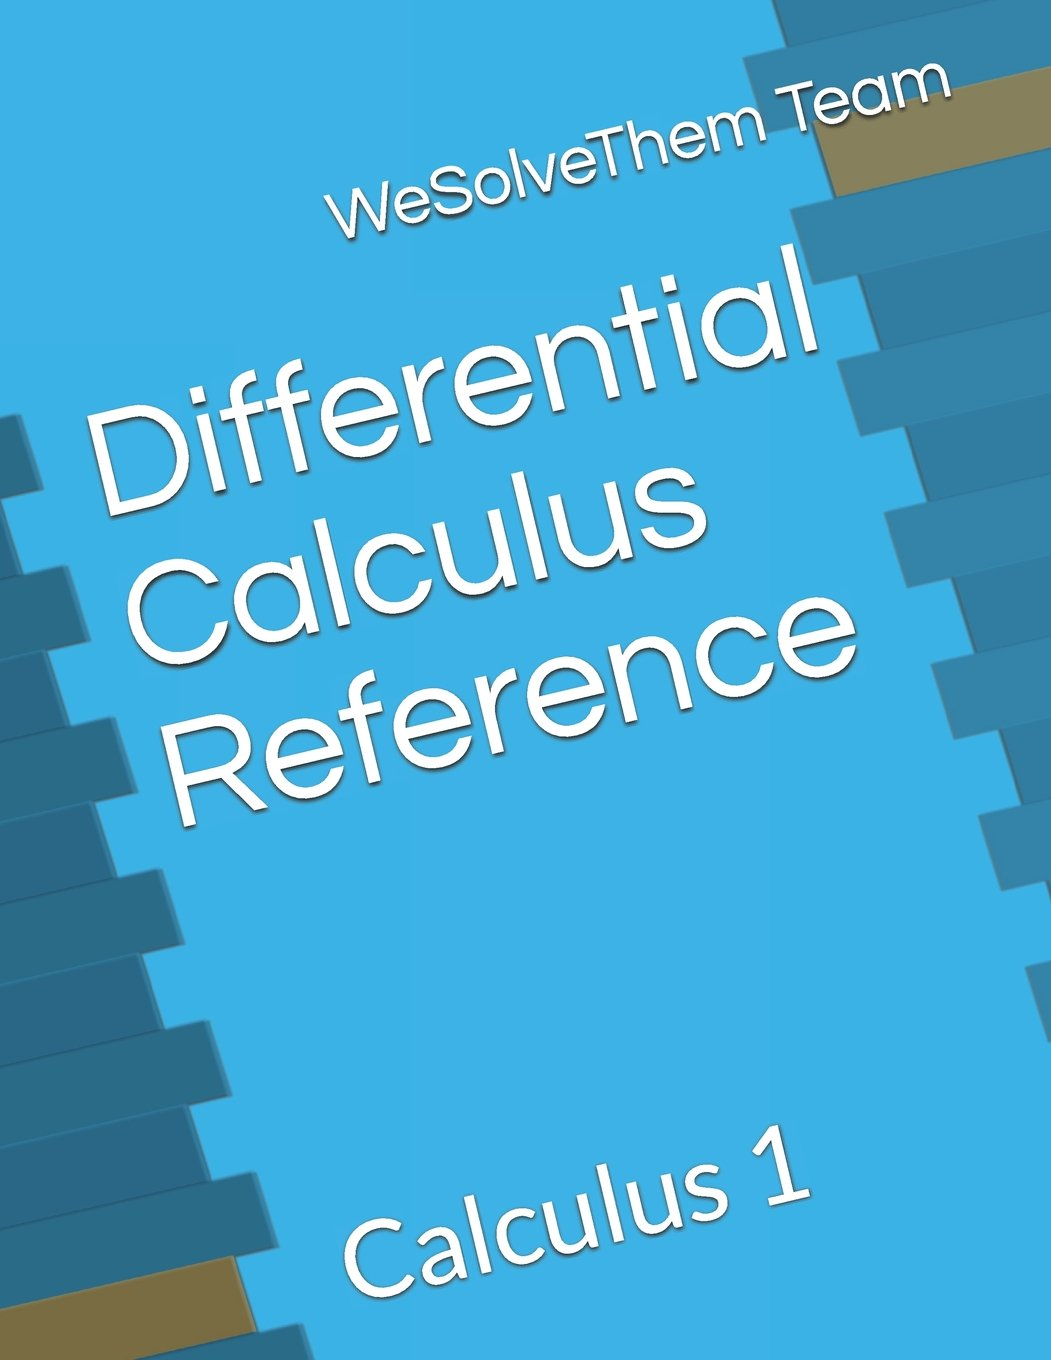 Differential Calculus Reference: Calculus 1 Paperback – August 15, 2017. by WeSolveThem  Team ...